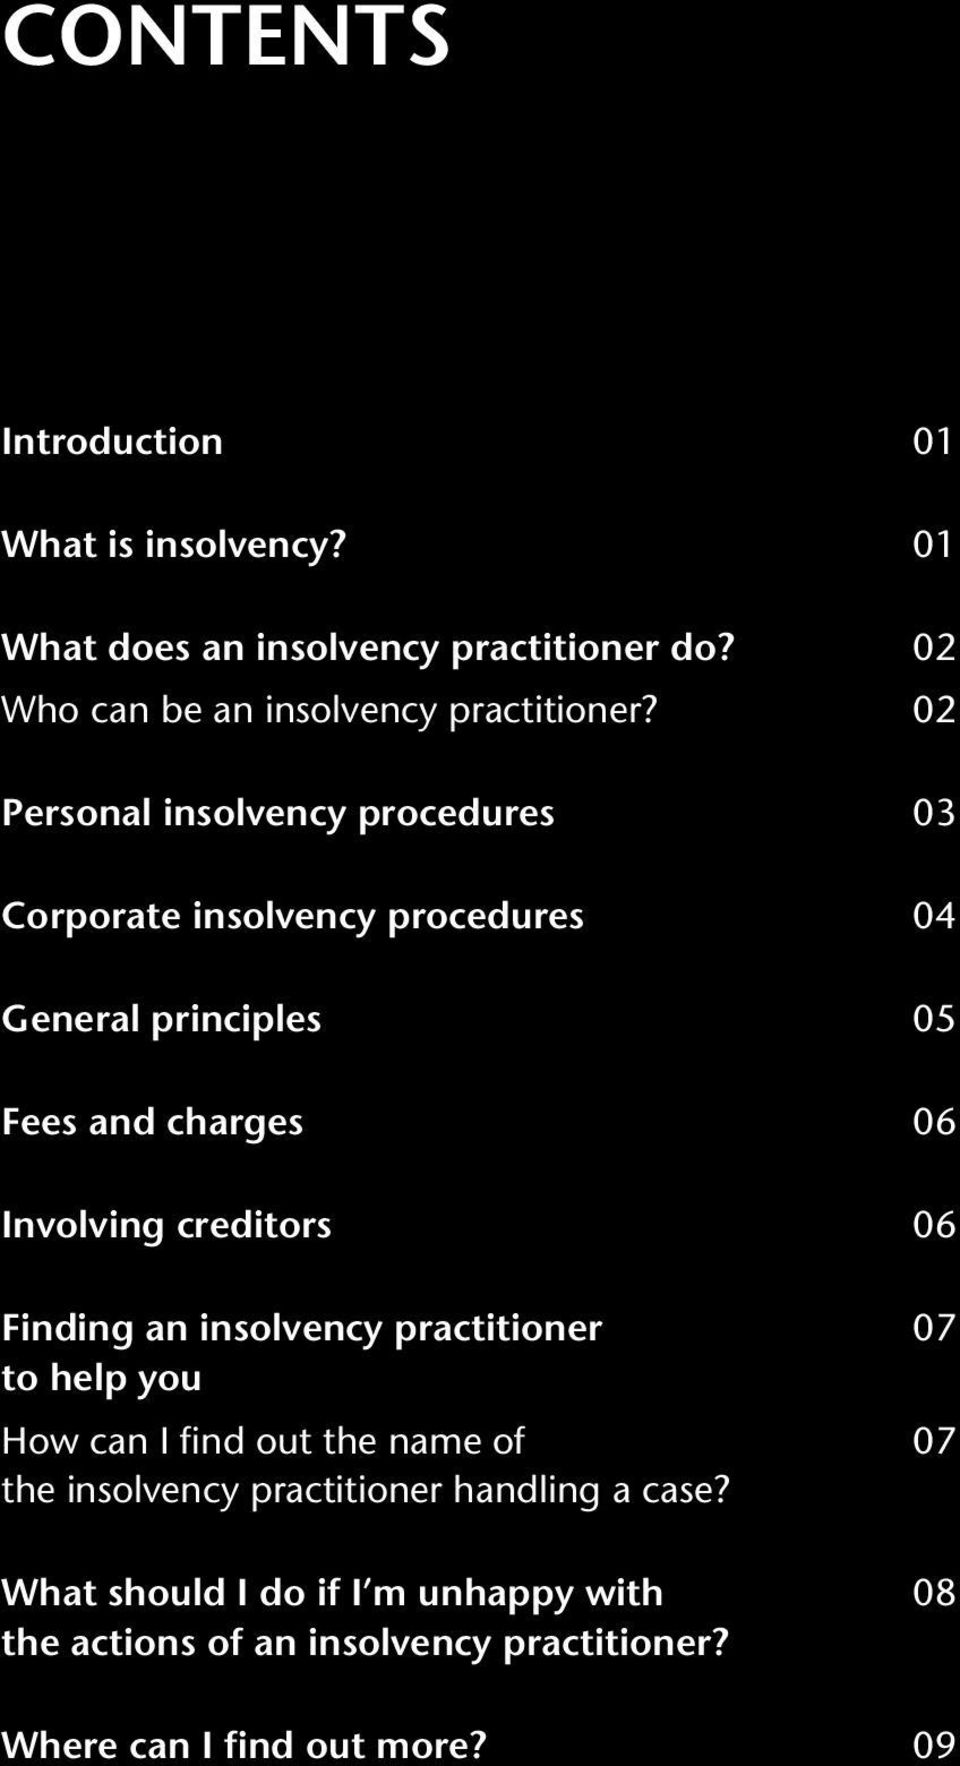 02 Personal insolvency procedures 03 Corporate insolvency procedures 04 General principles 05 Fees and charges 06 Involving